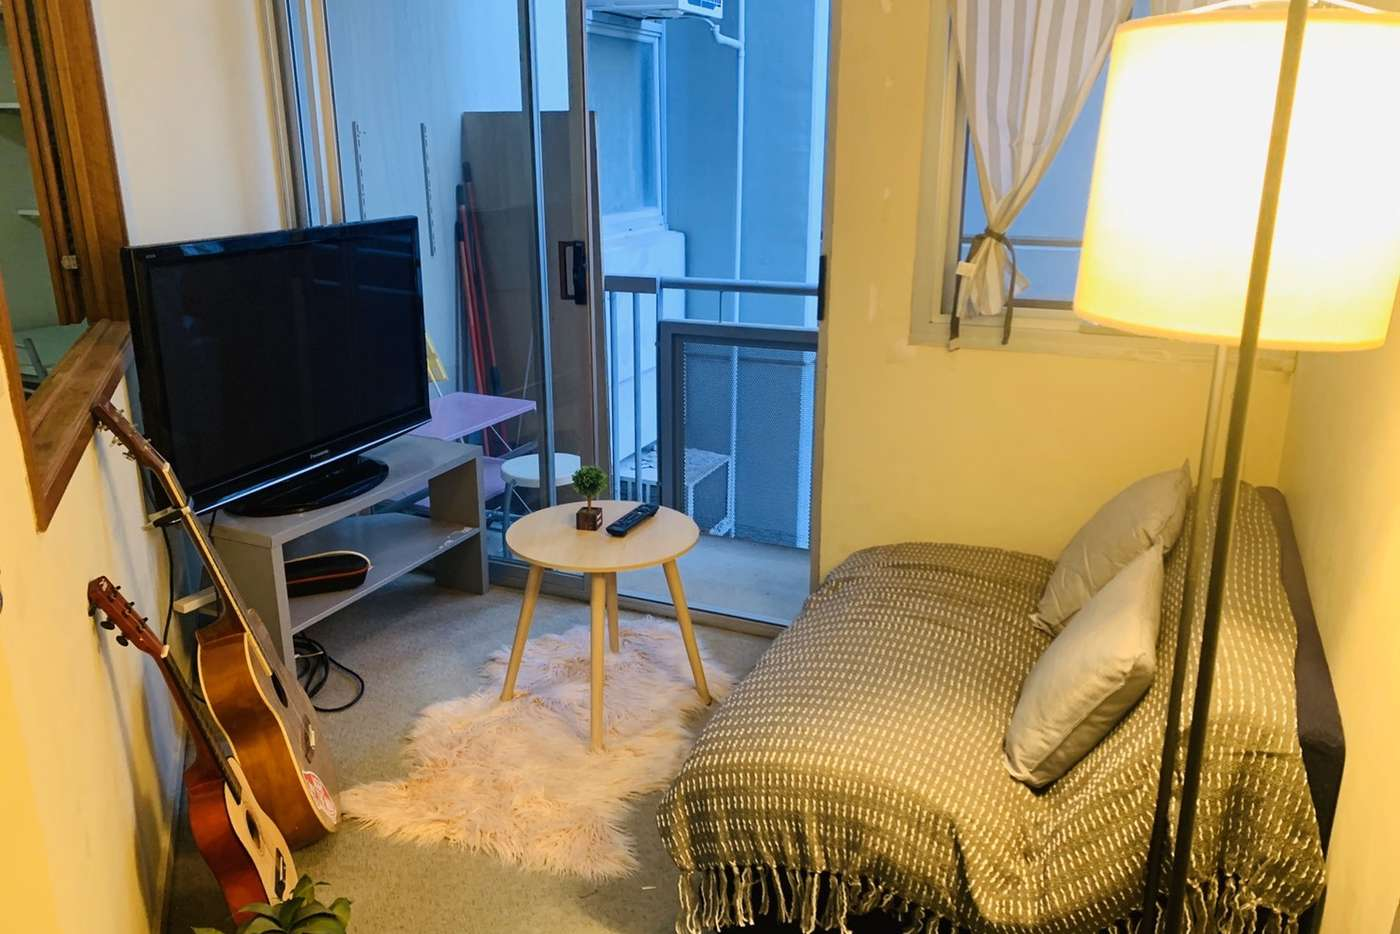 Main view of Homely apartment listing, Unit 667/488 Swanston St, Carlton VIC 3053